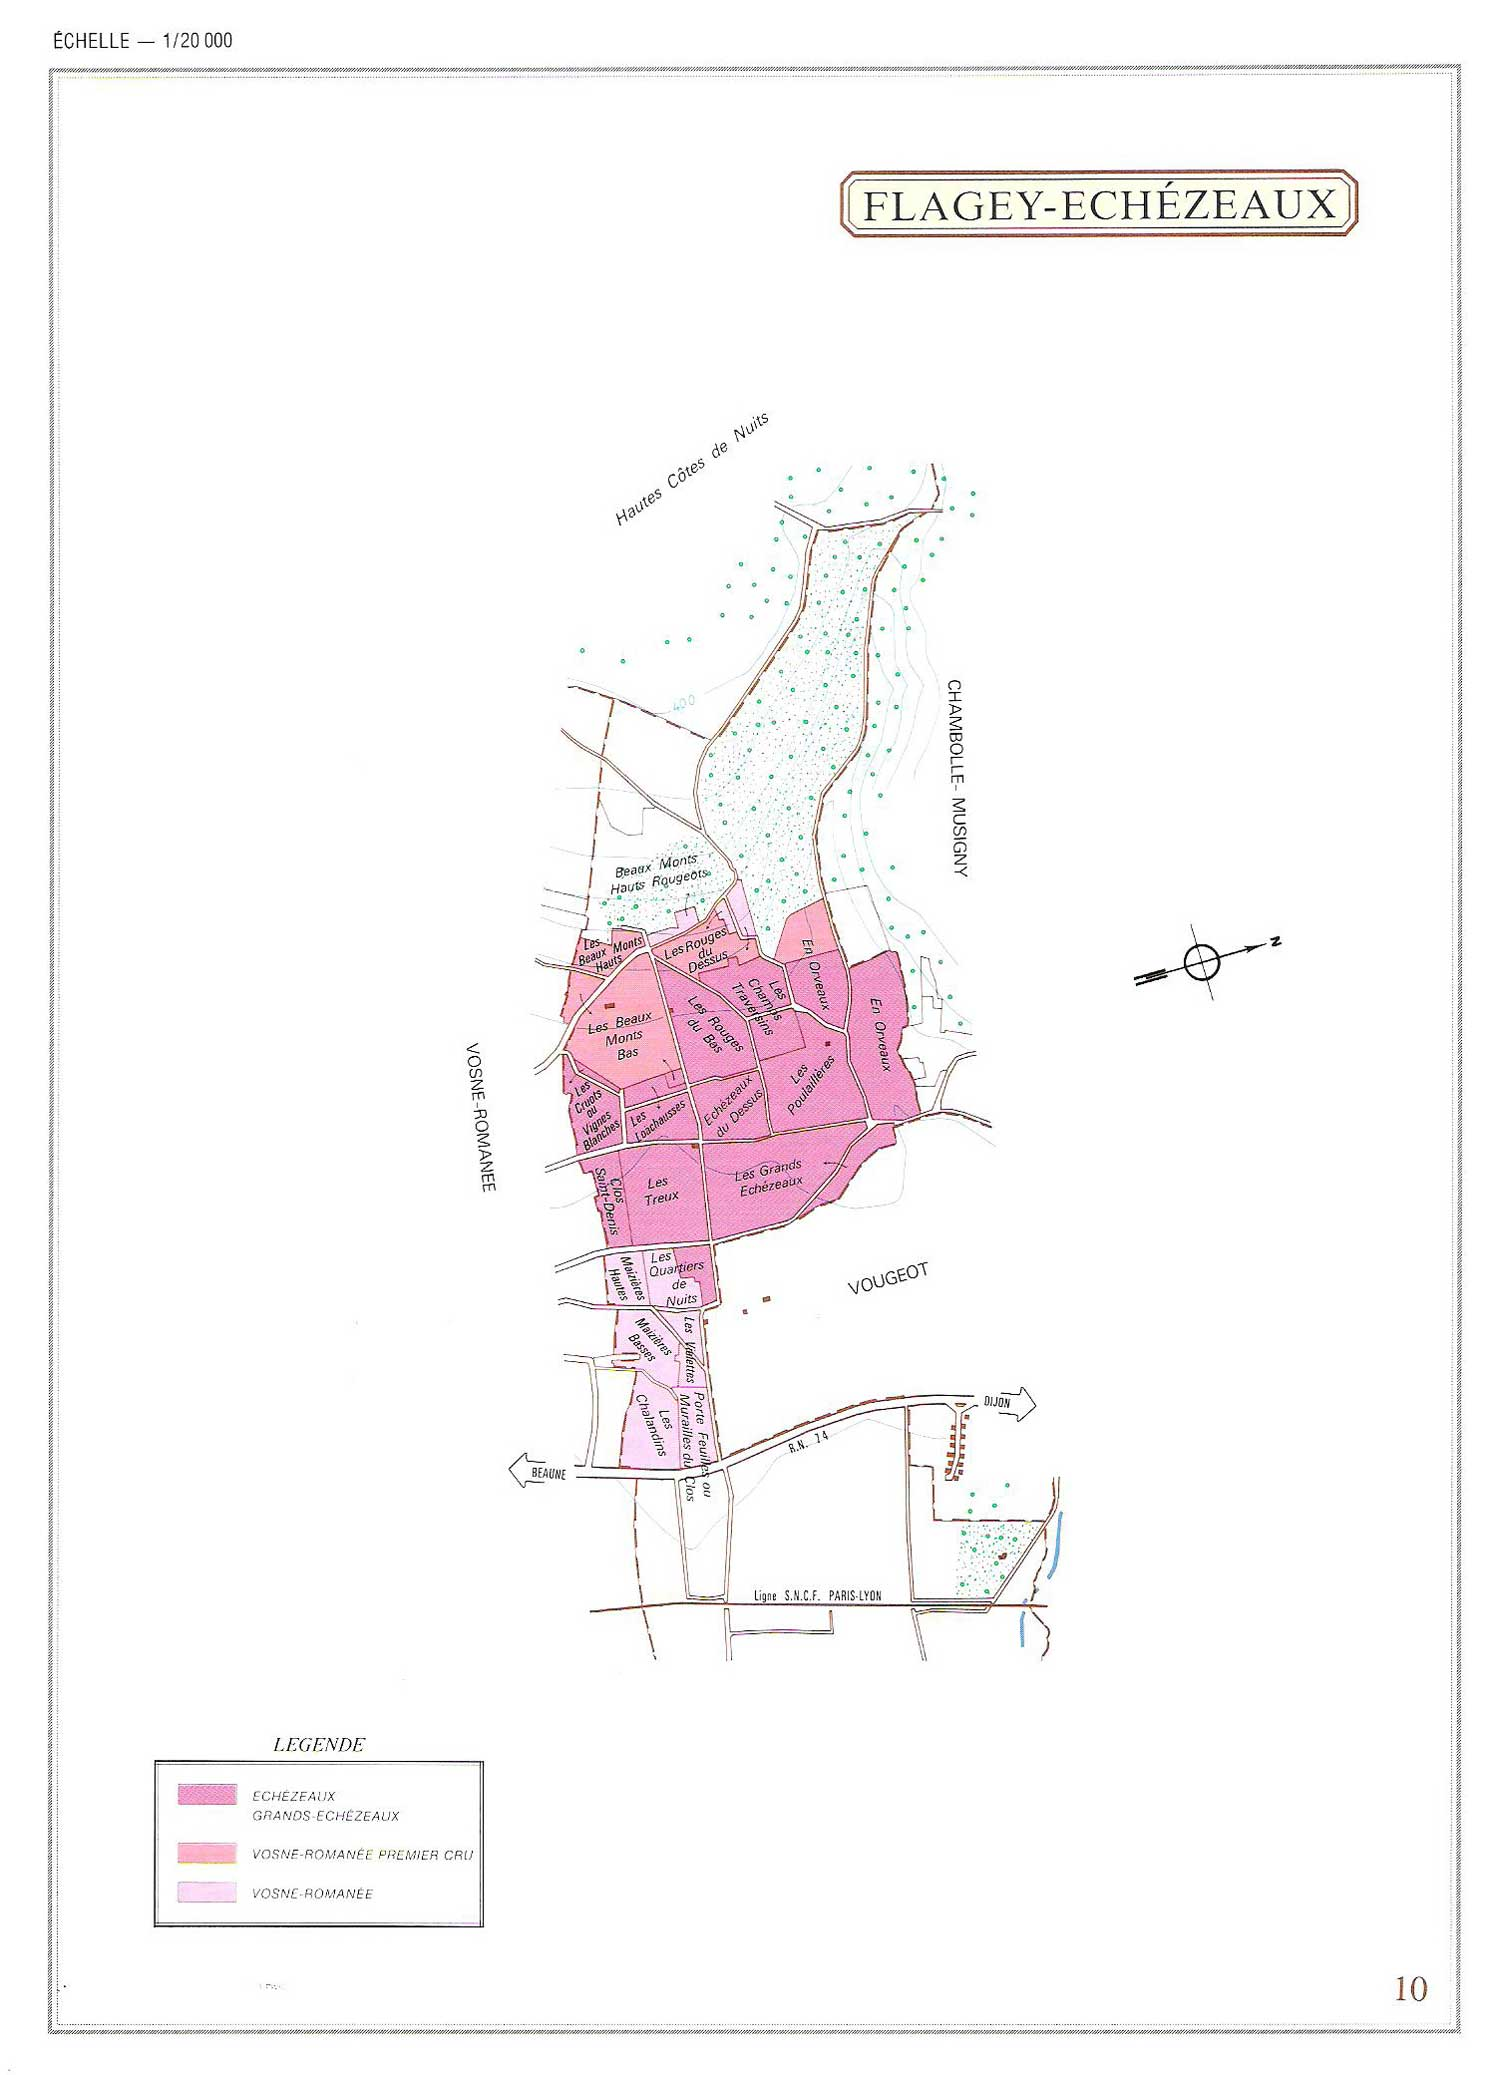 Picture of Flagey-Echezeaux Vineyard Map